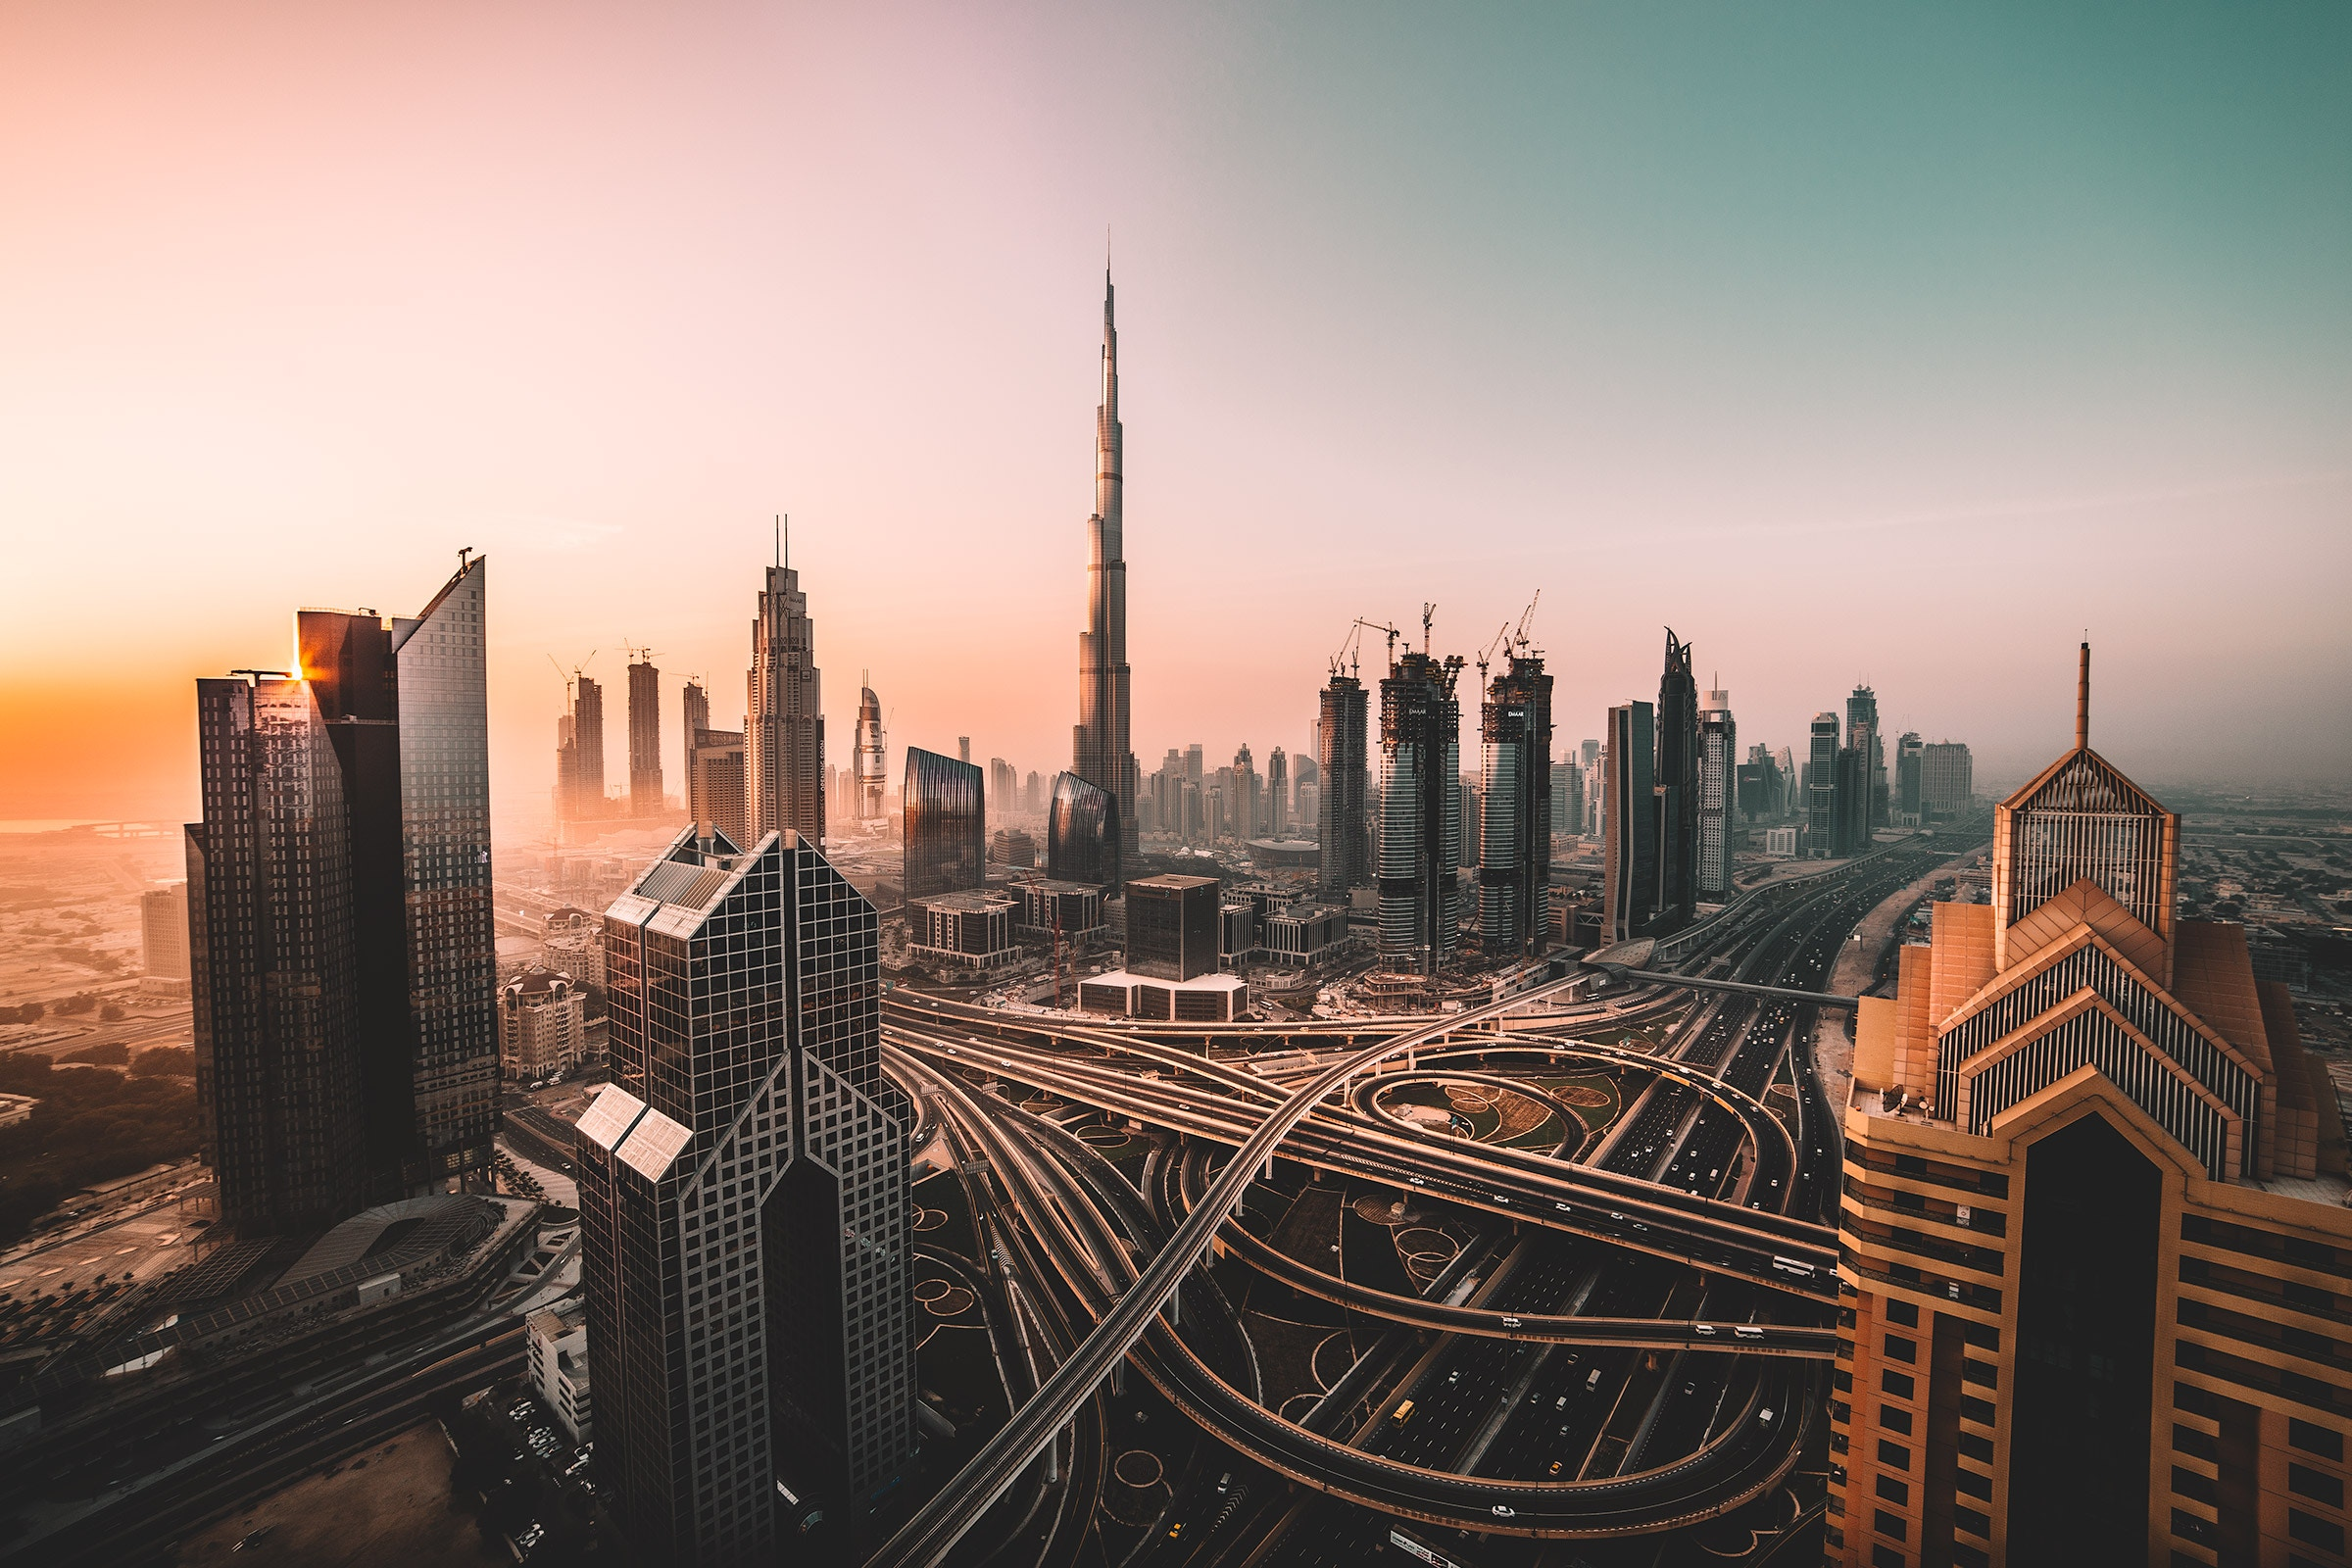 Product Launch Marketing & Brand Positioning: Dubai (5-8 November 2018)